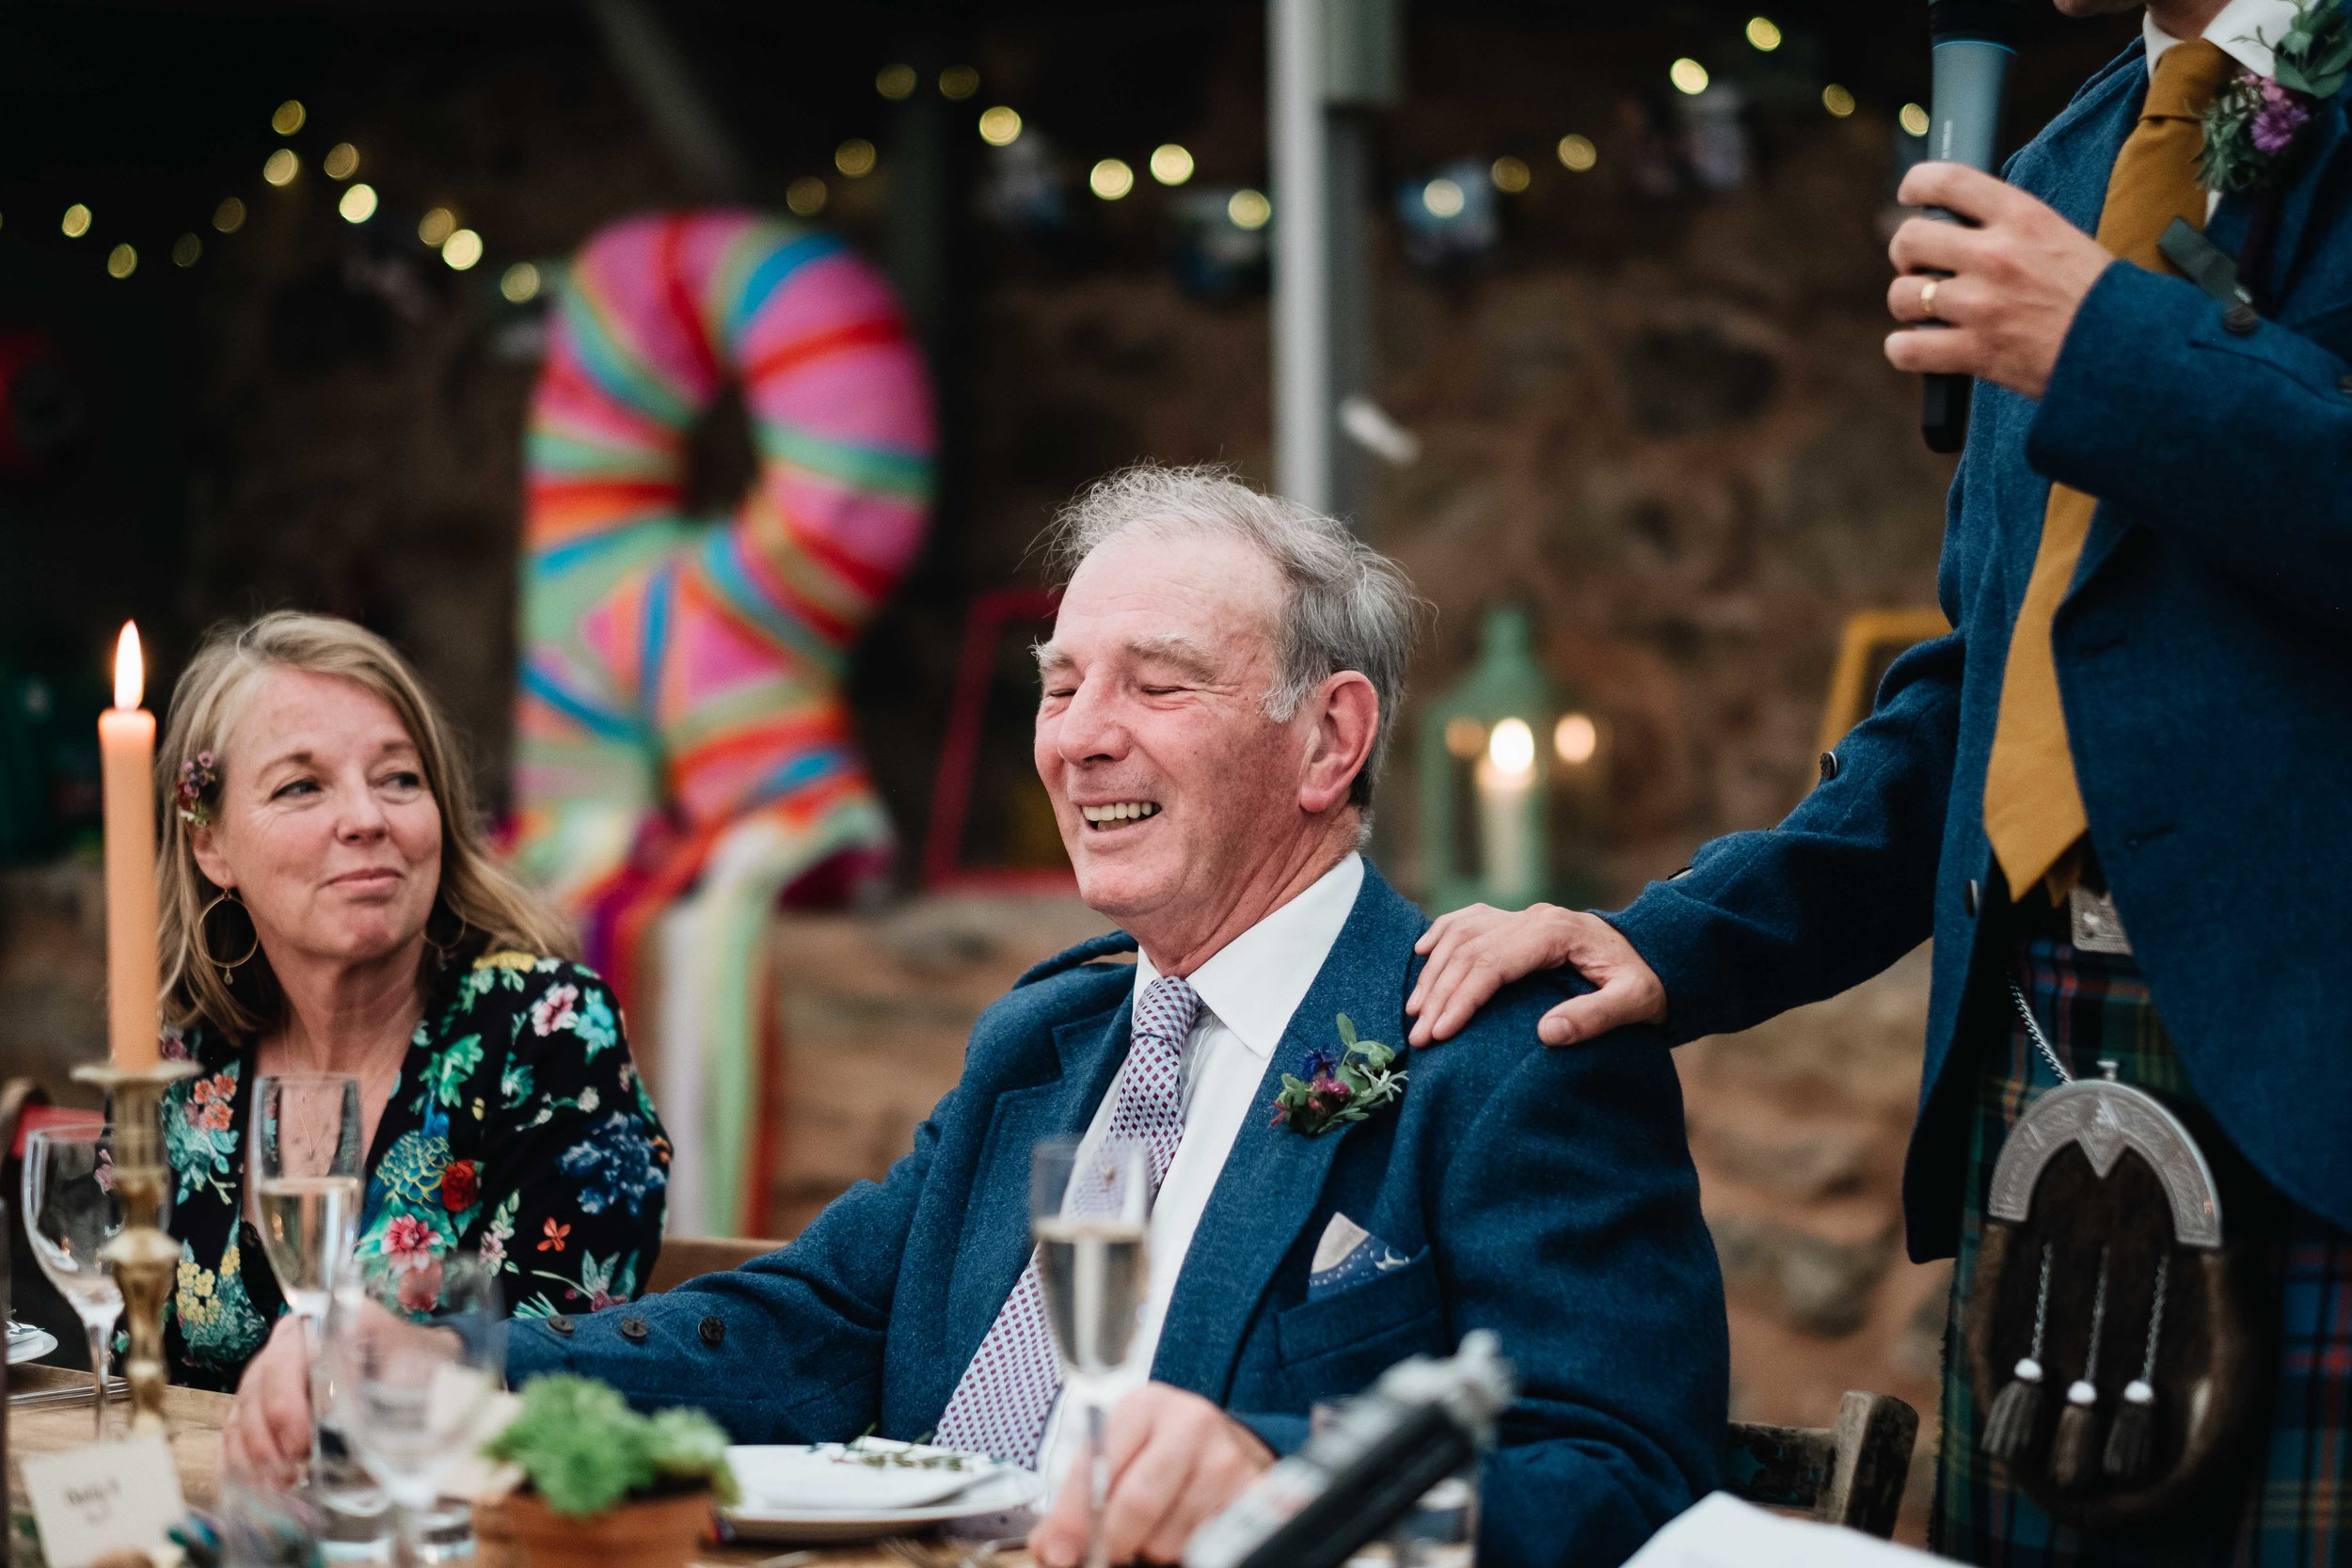 father laughing at something his son has said during the wedding speech